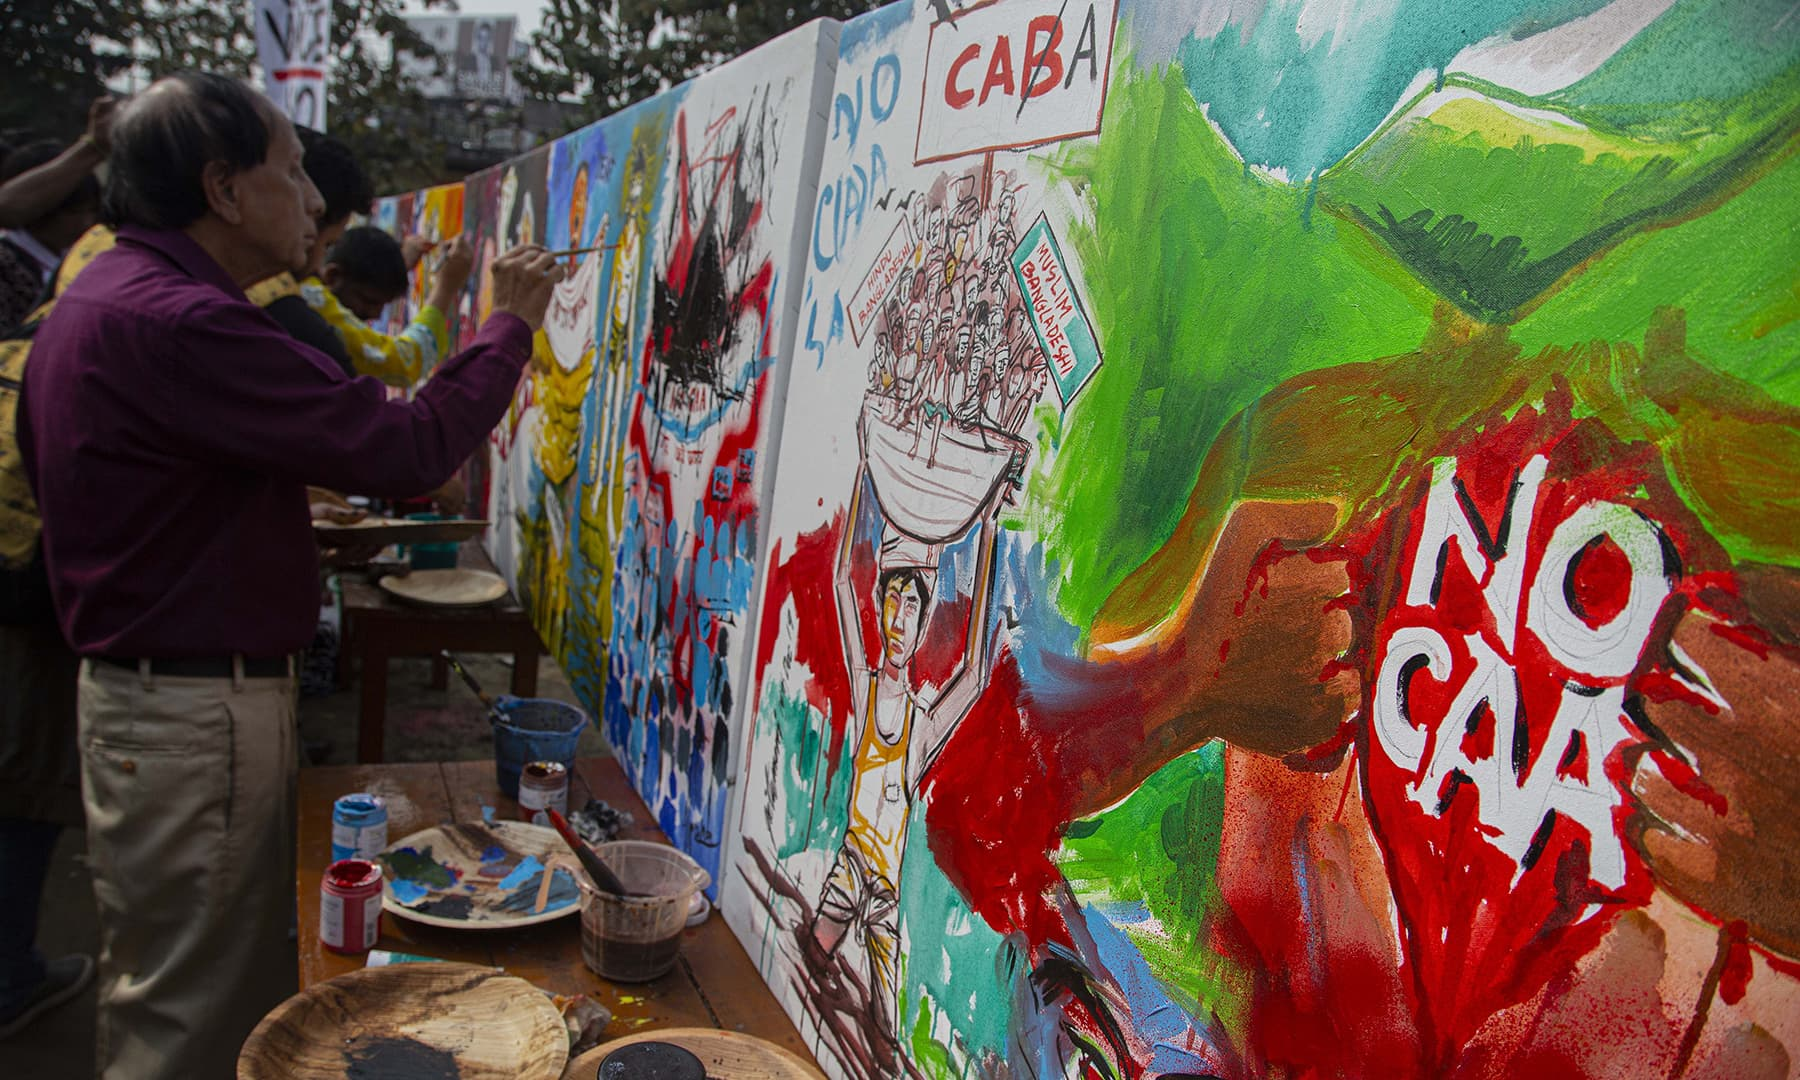 Indian artists paint to protest against the Citizenship Amendment Act in Gauhati, India on Sunday. — AP